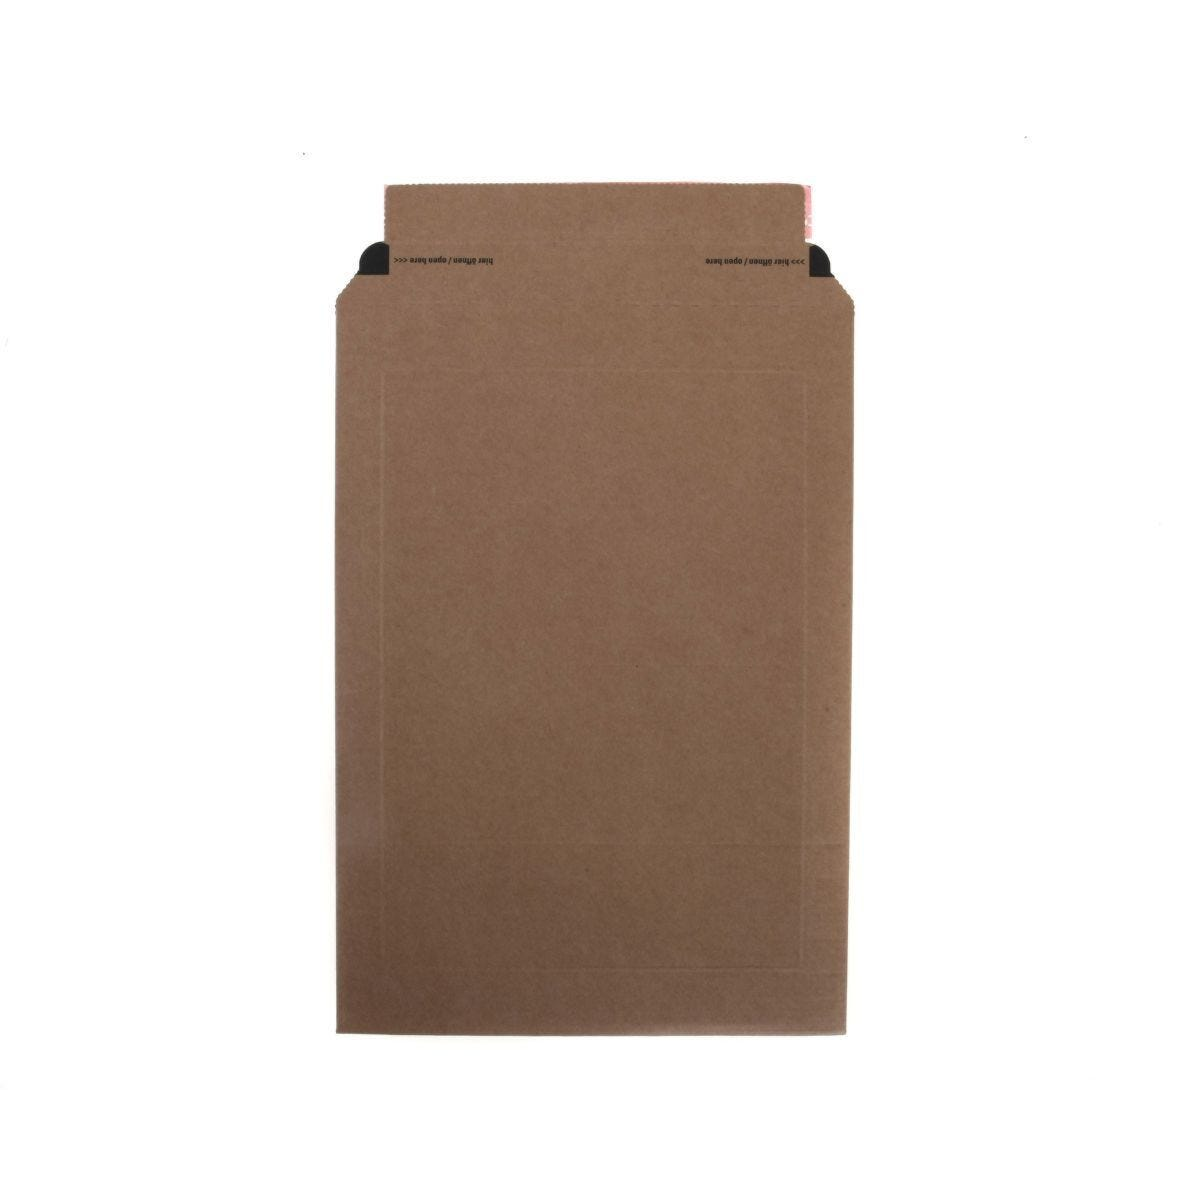 ColomPac All Board Envelope 300x215mm Peel and Seal